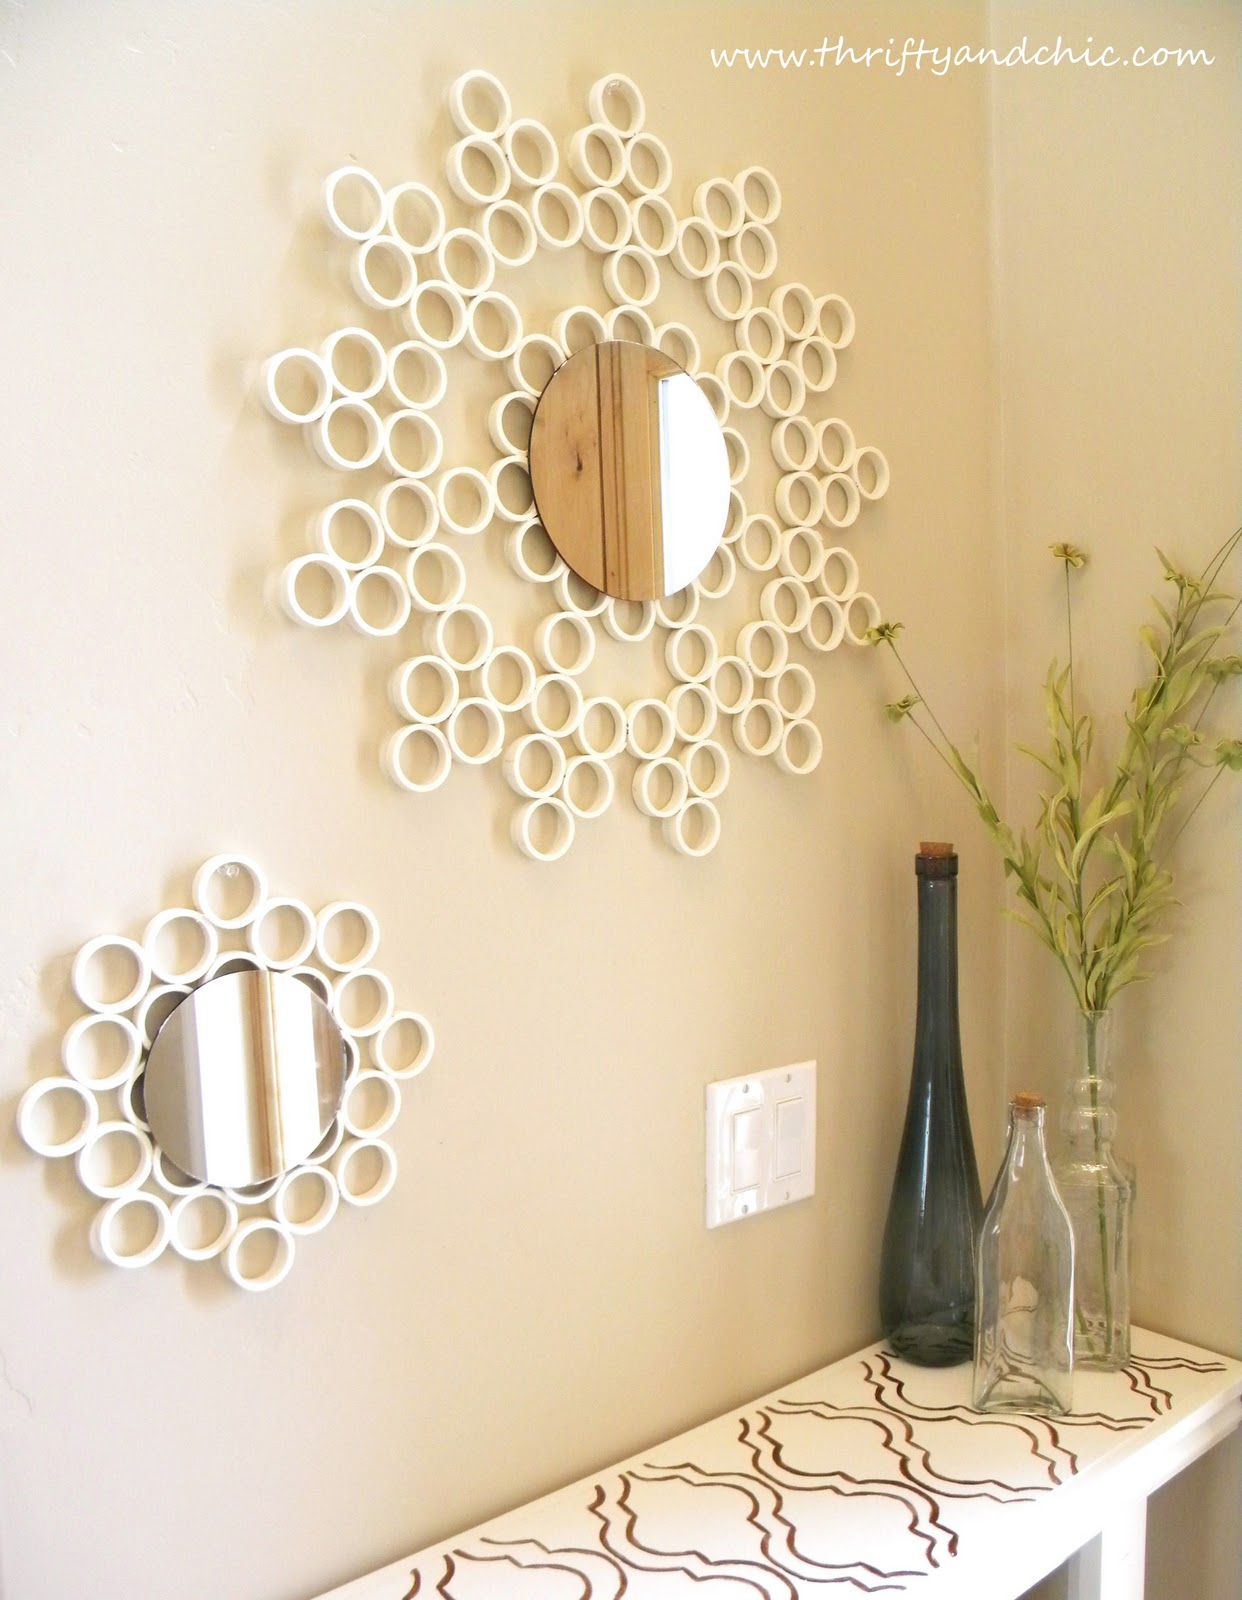 Fun Projects with PVC Pipes! - Must Have Mom